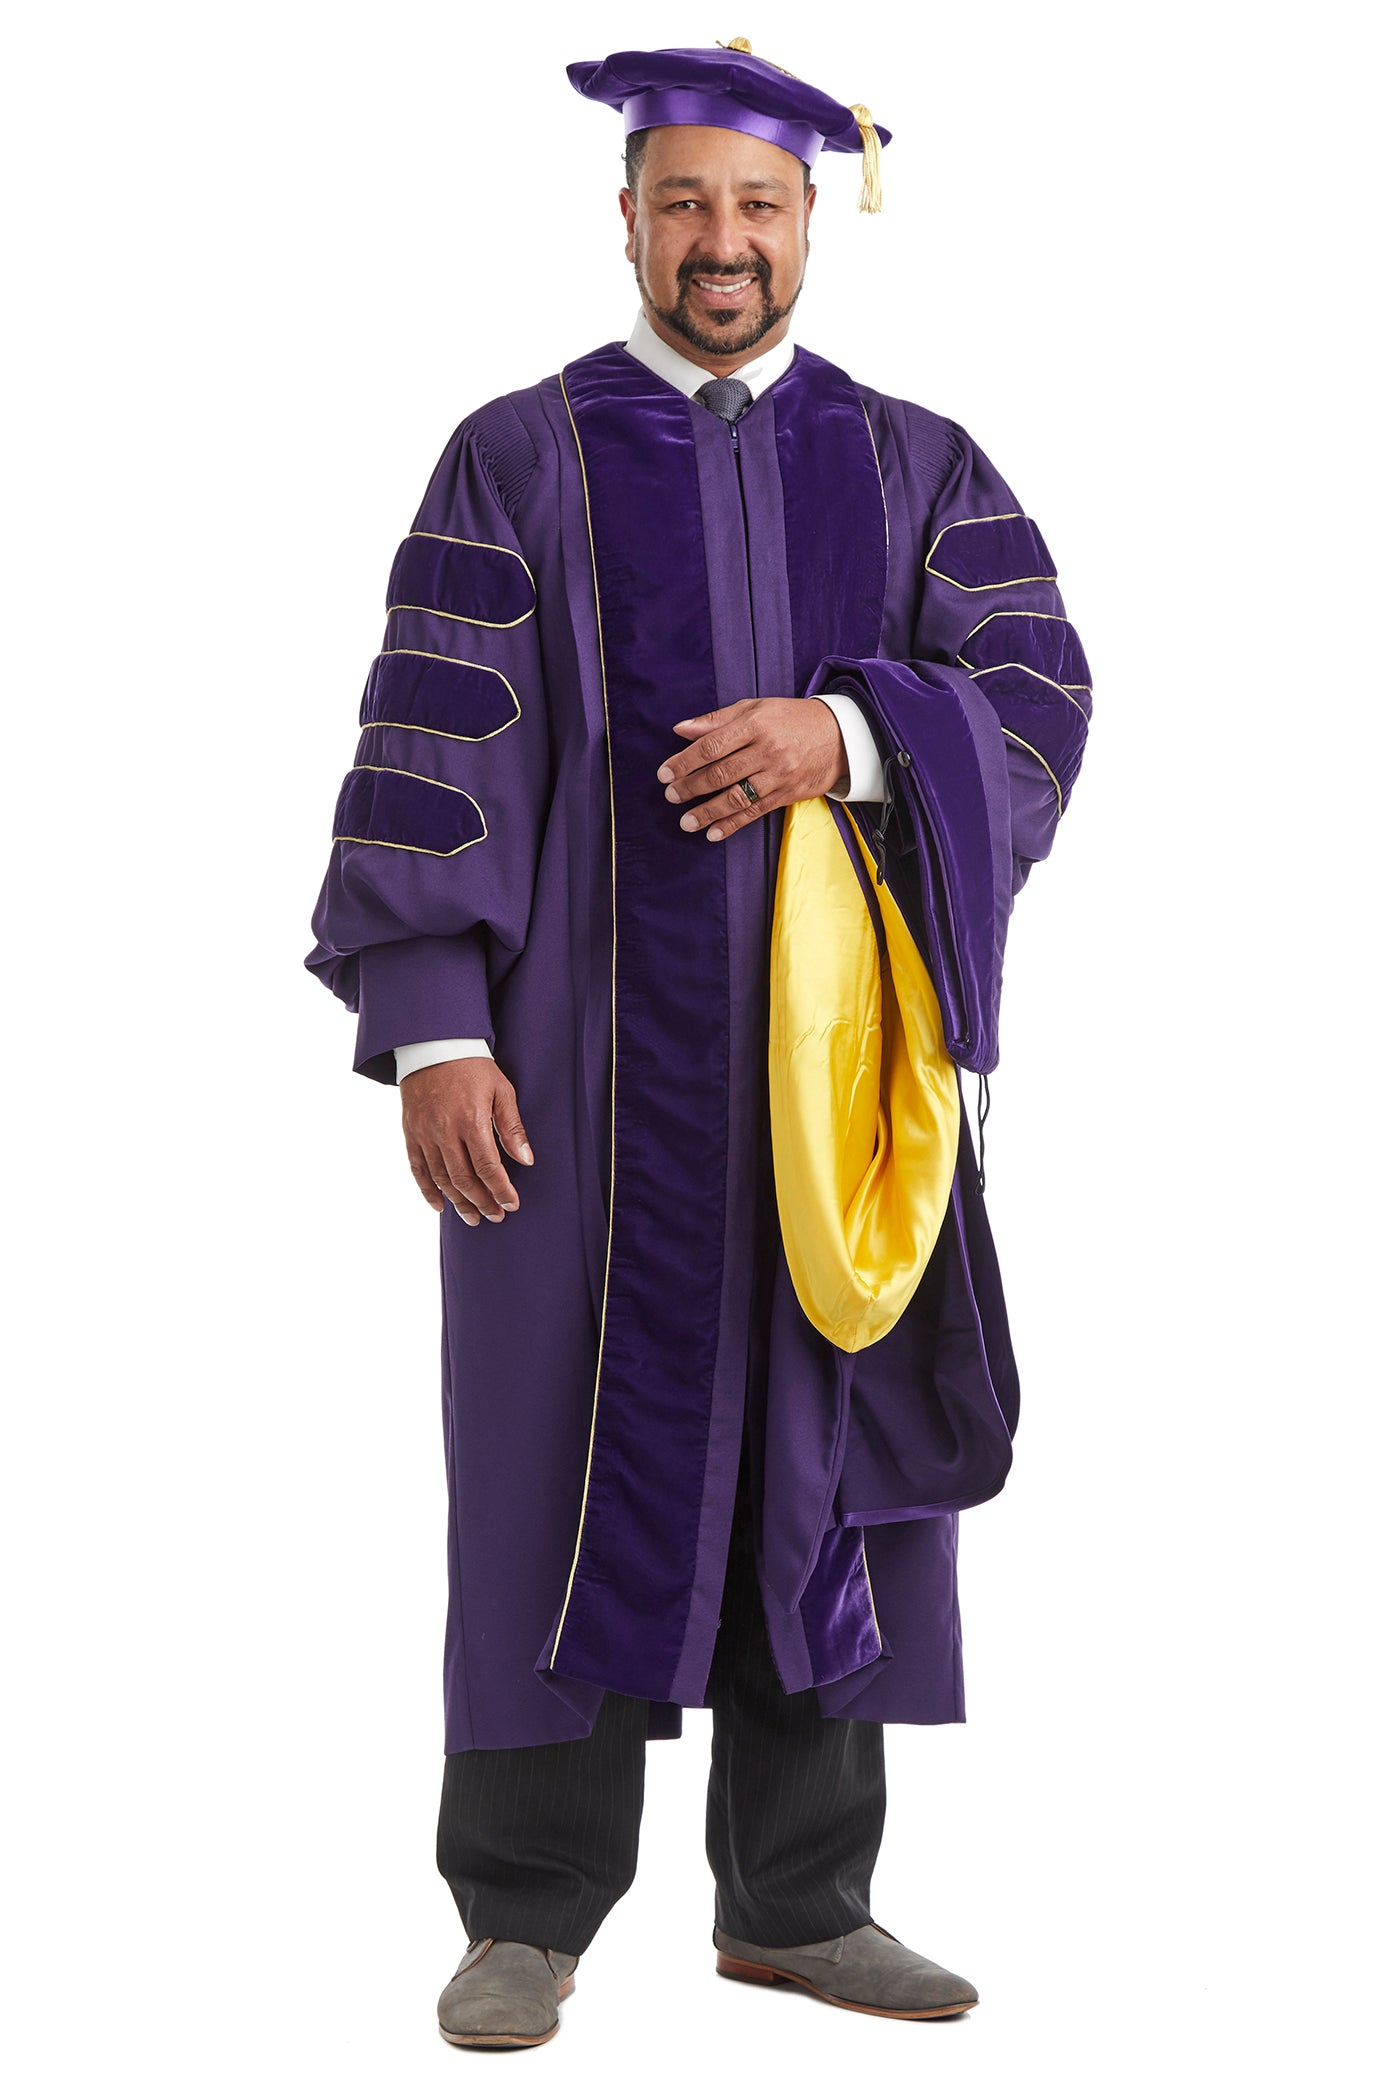 University of Washington Doctoral Hood For Graduation